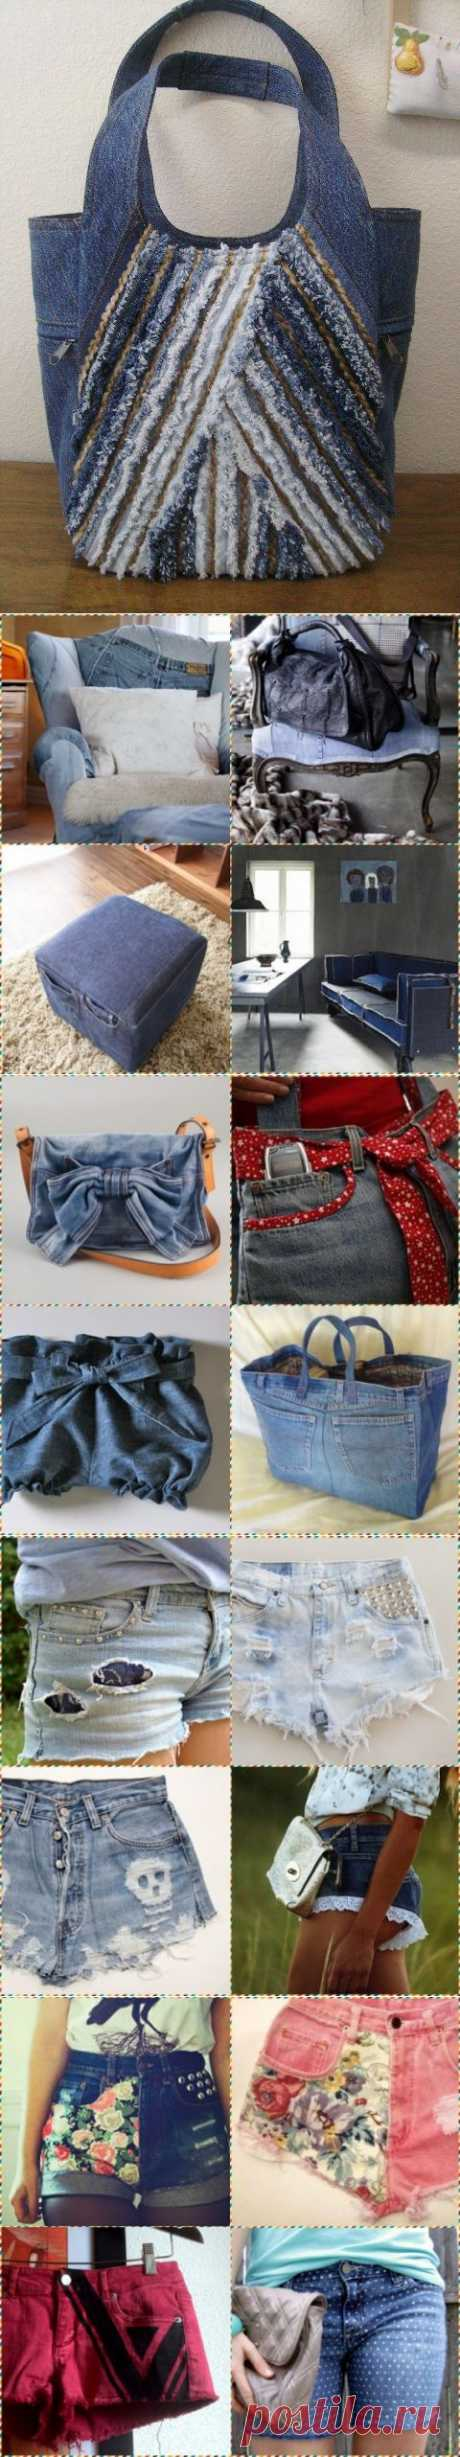 60 ideas for alteration of old jeans clothes \/ I am a superpuper